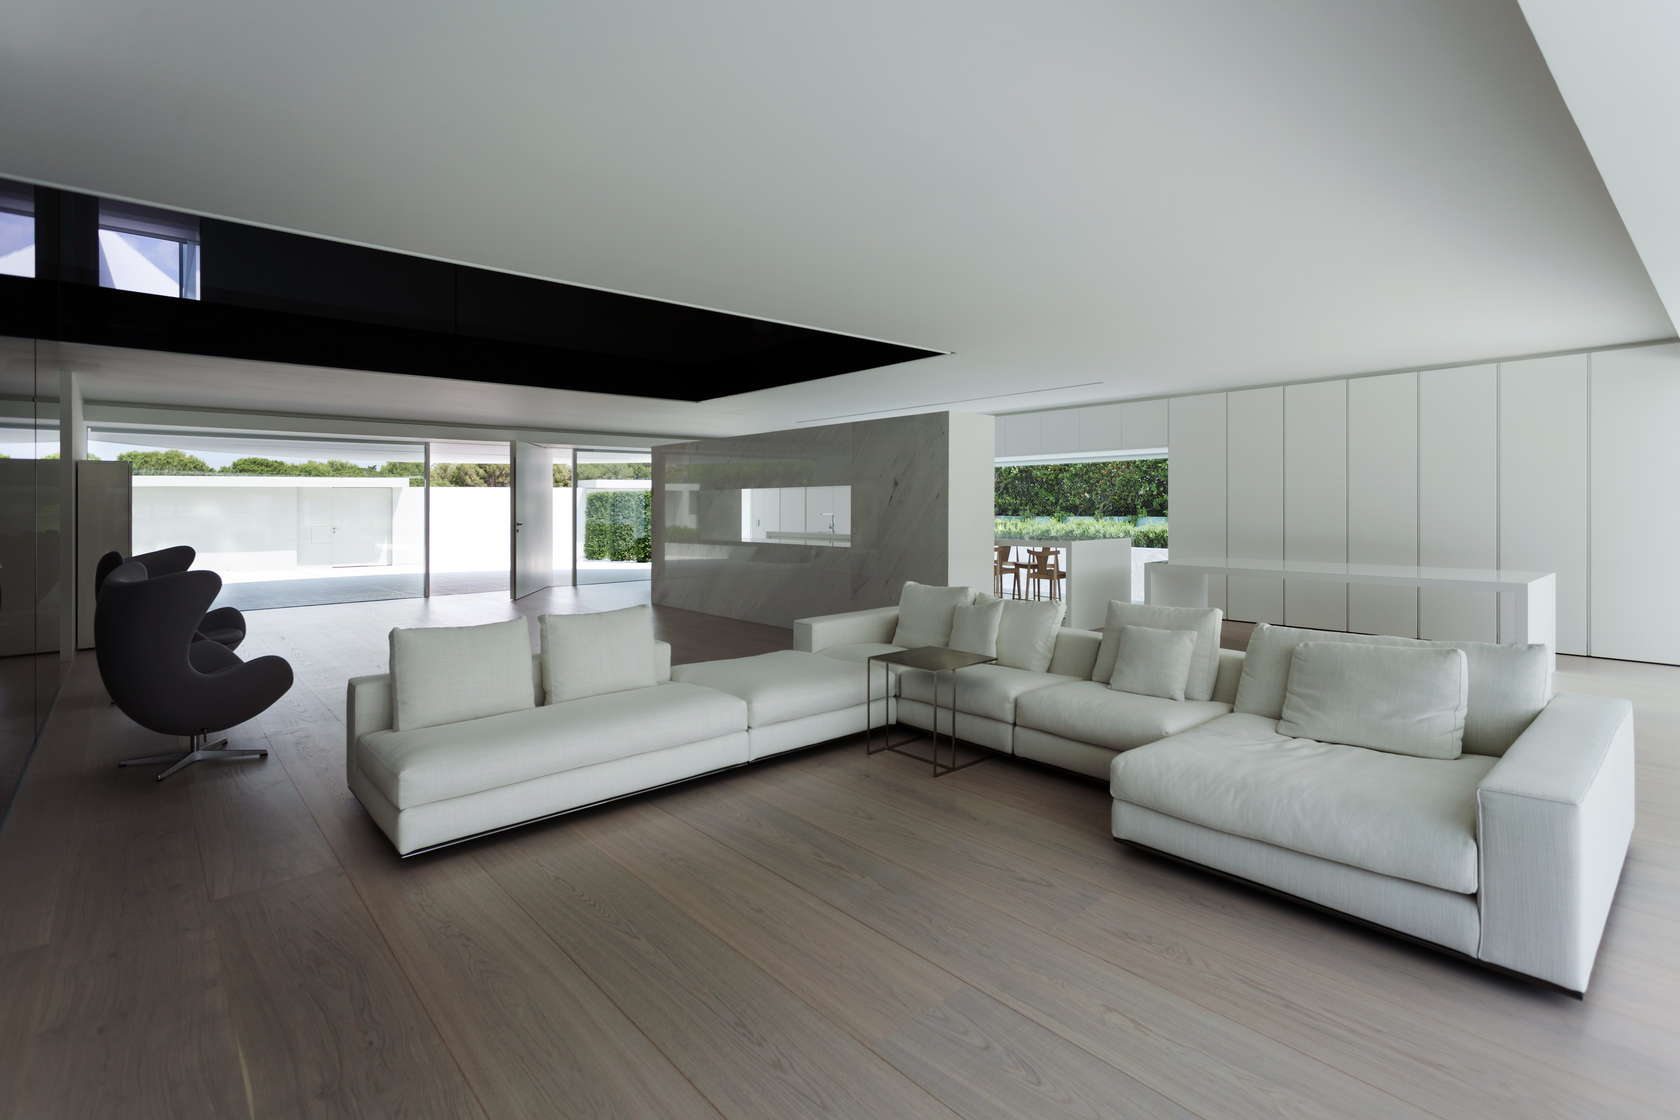 Golf course views and a striking exterior make for a for Minimal house interior